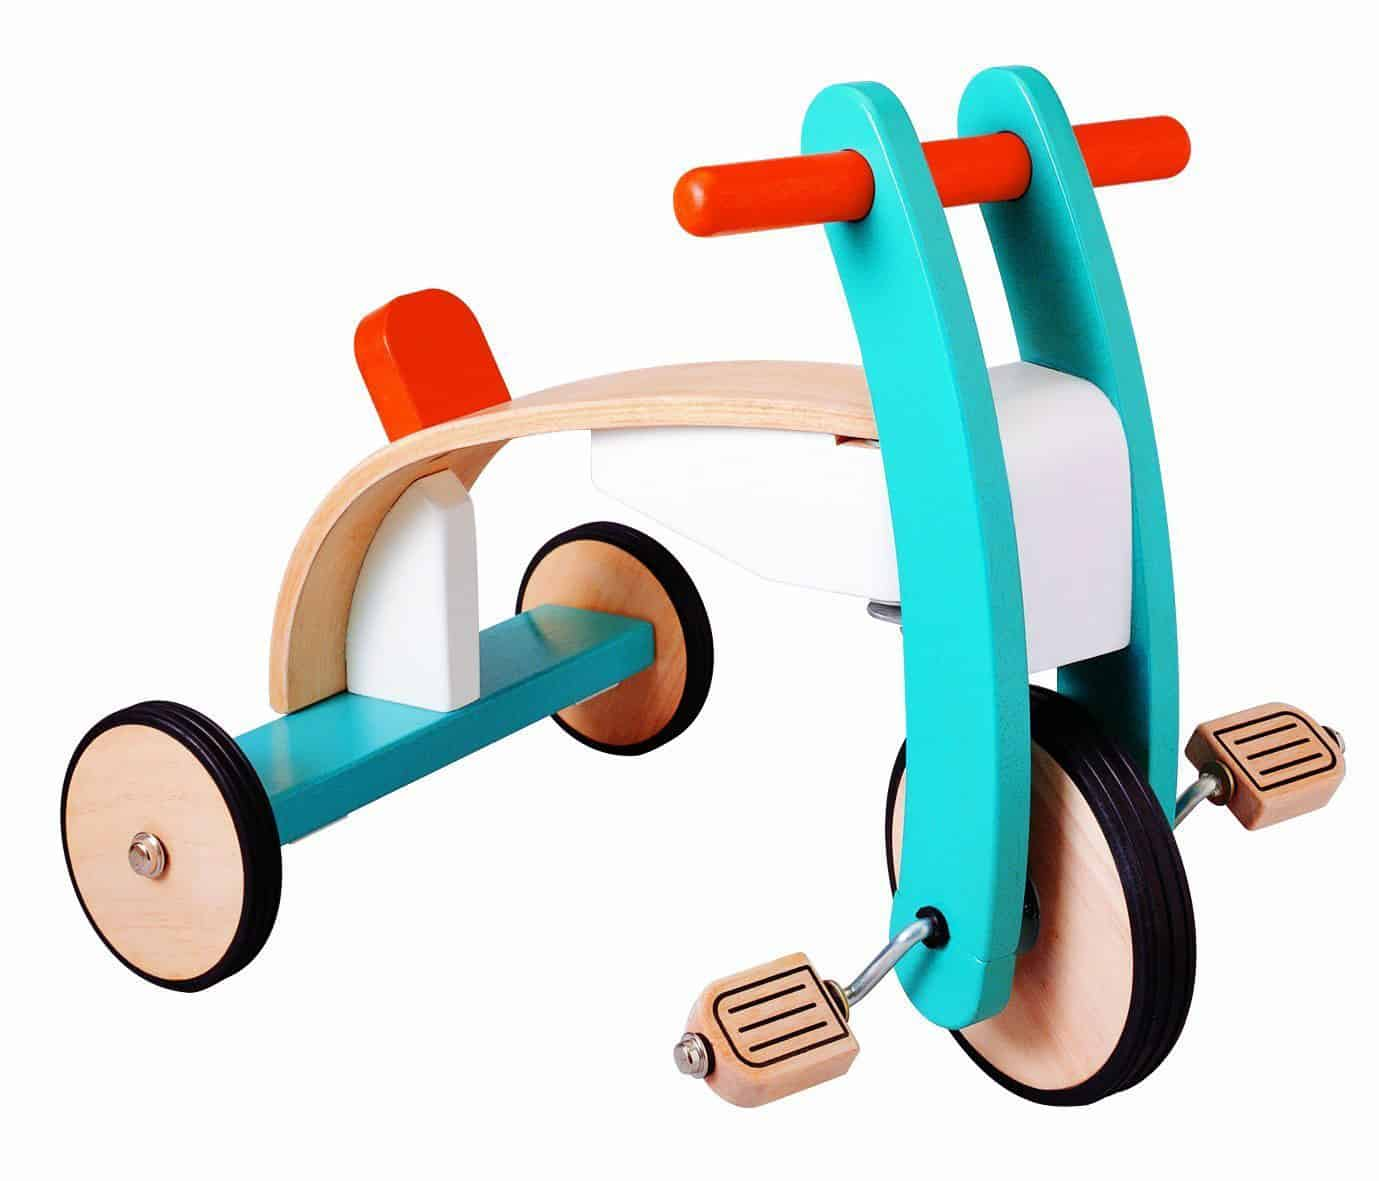 Art Toys For Toddlers : Hello wonderful starter wooden ride on toys for toddlers